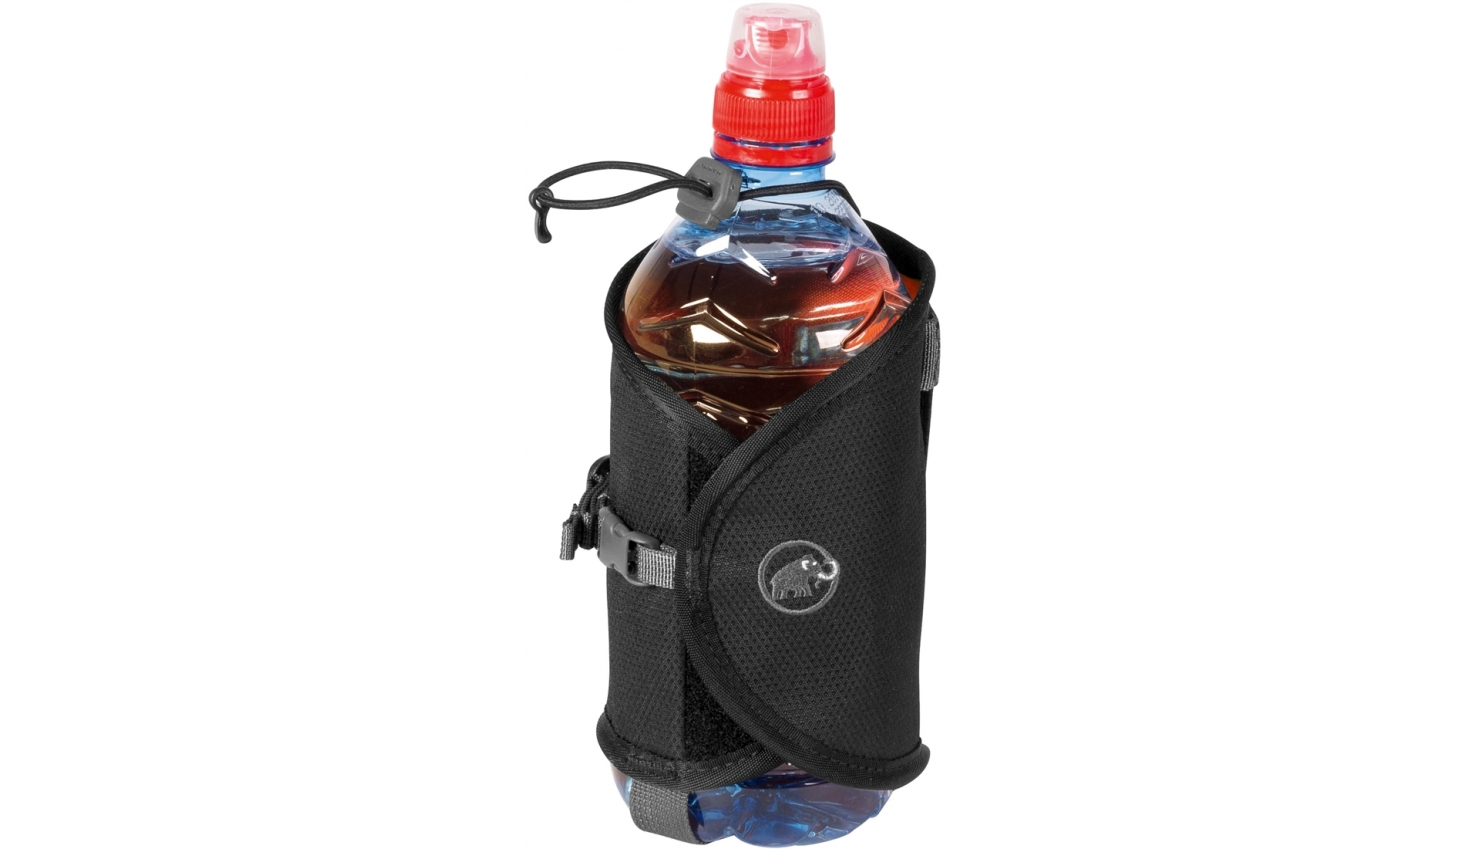 Mammut_Add-on_Bottle_Holder_Black_0001_00[1470x849]